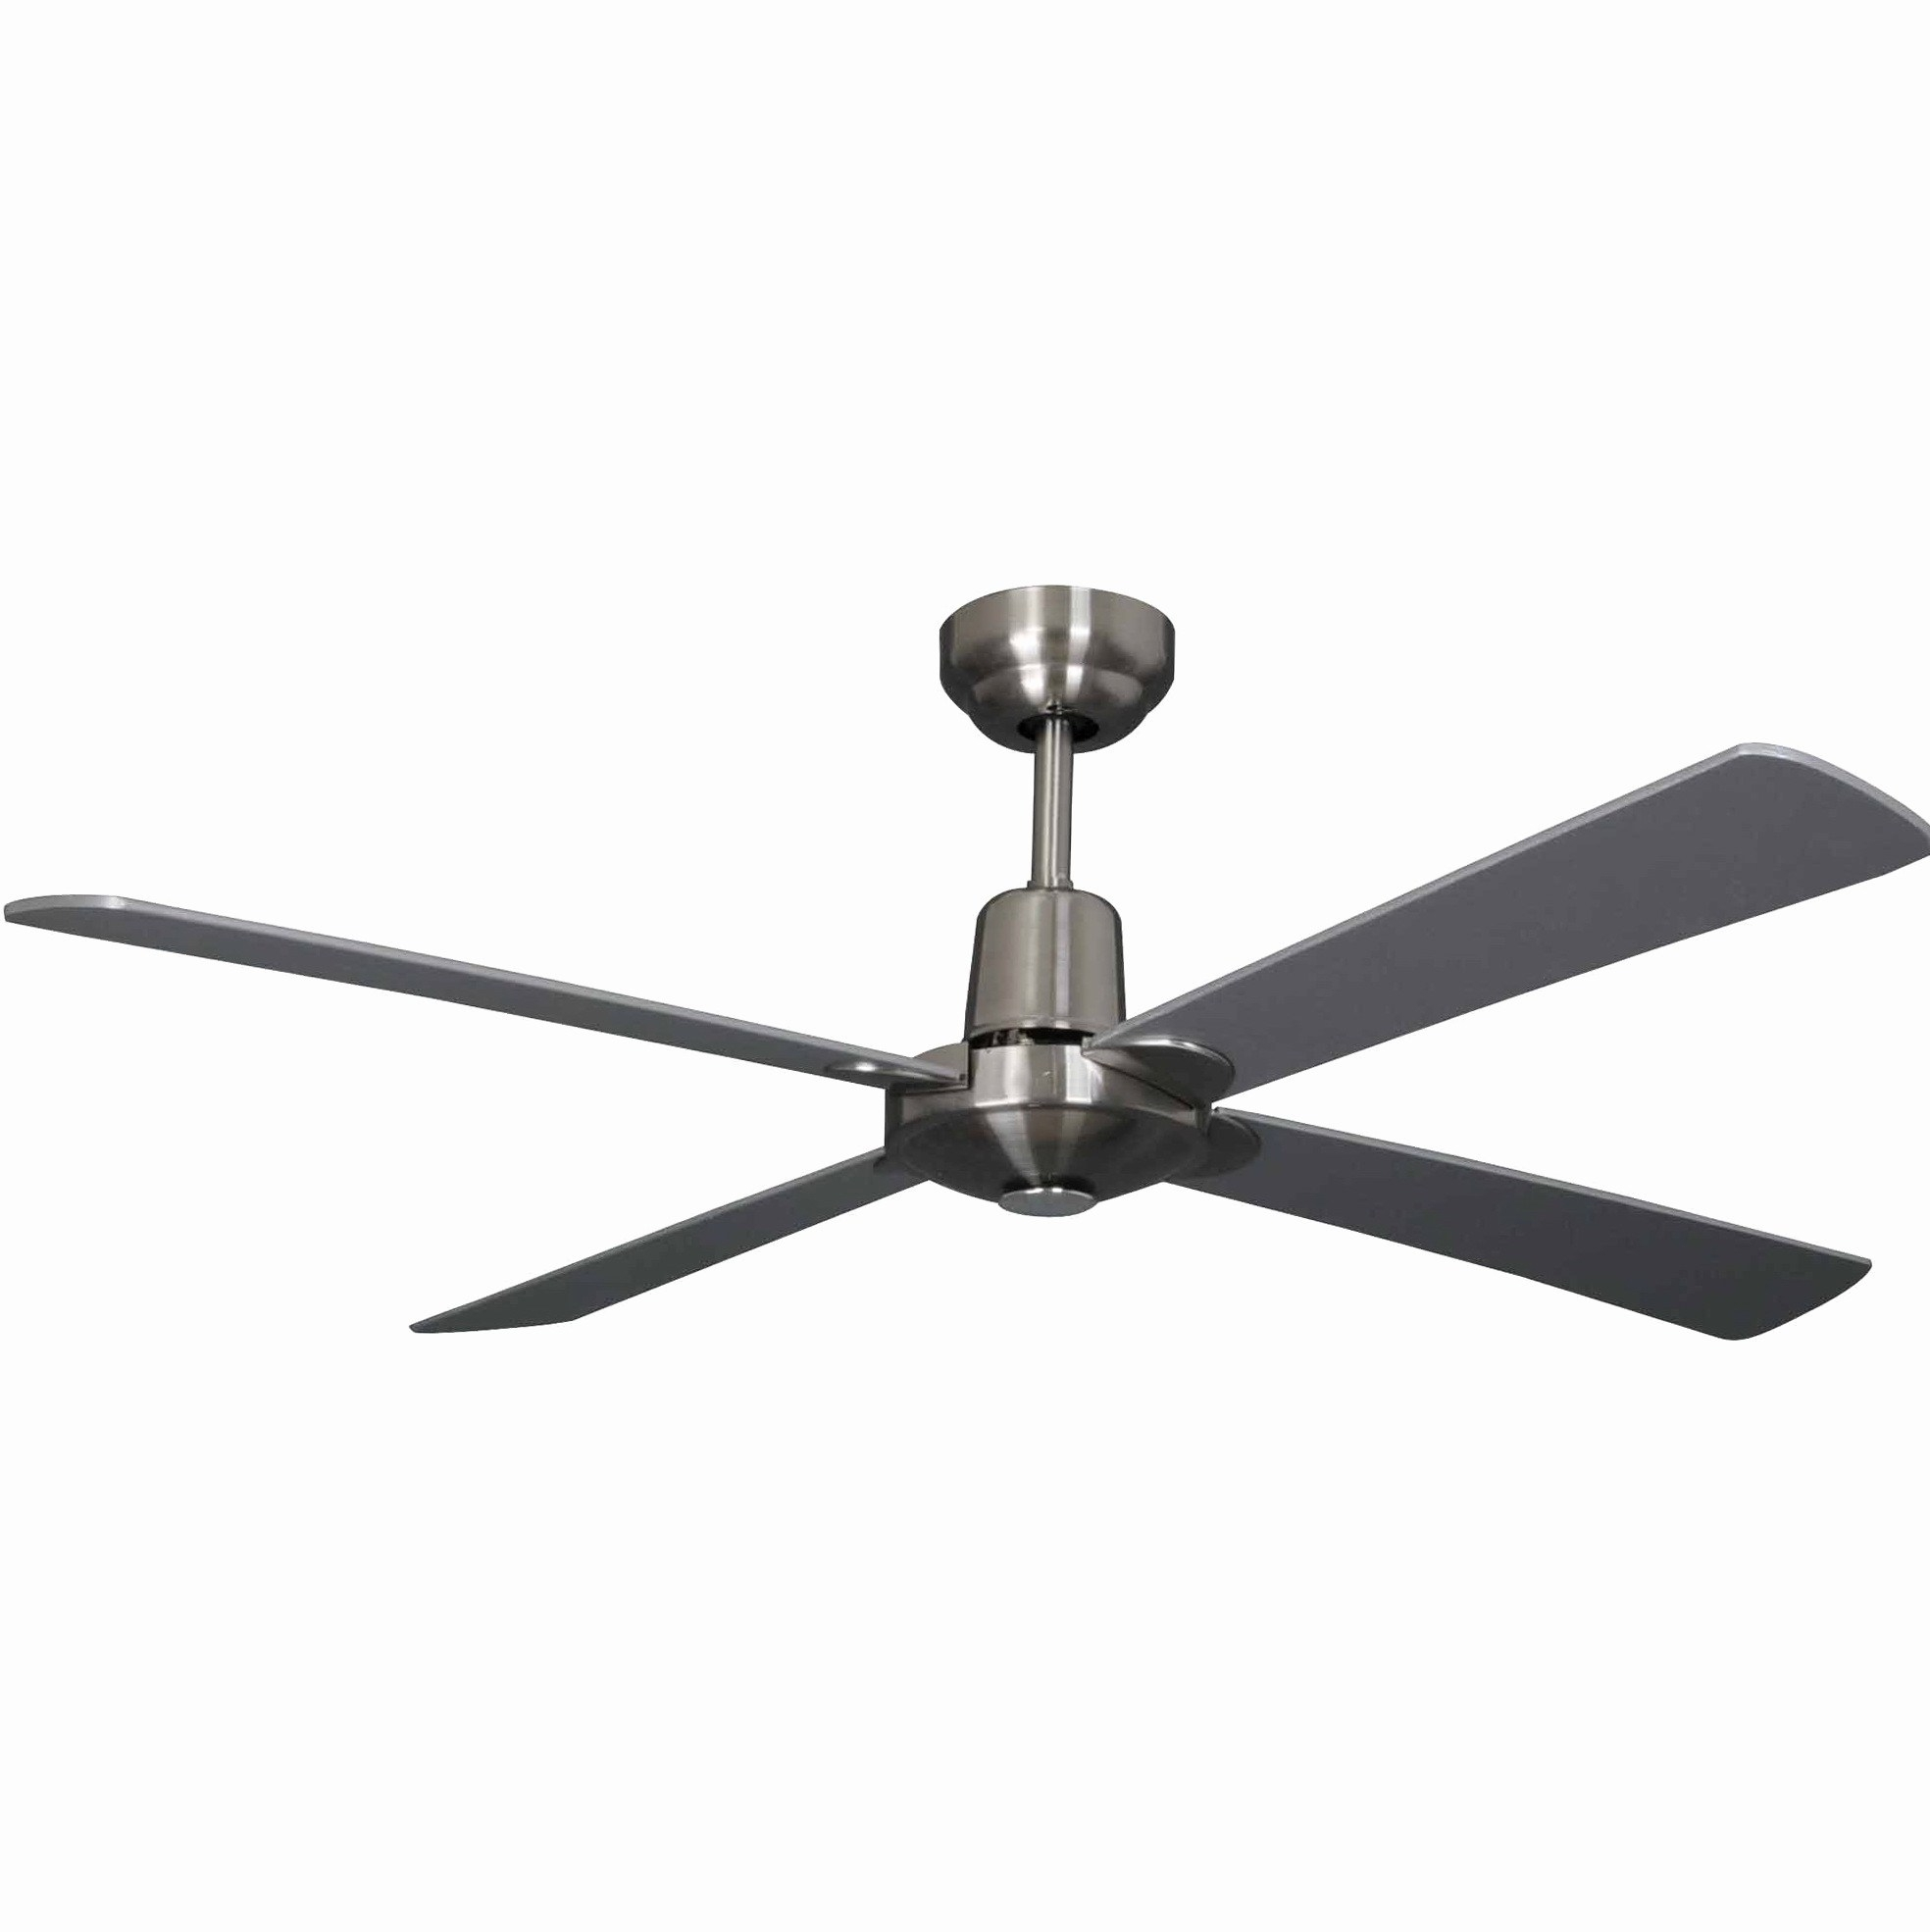 Newest Hunter Outdoor Ceiling Fans In Calmly Hunter Outdoor Original Regarding Outdoor Ceiling Fans At Menards (View 12 of 20)